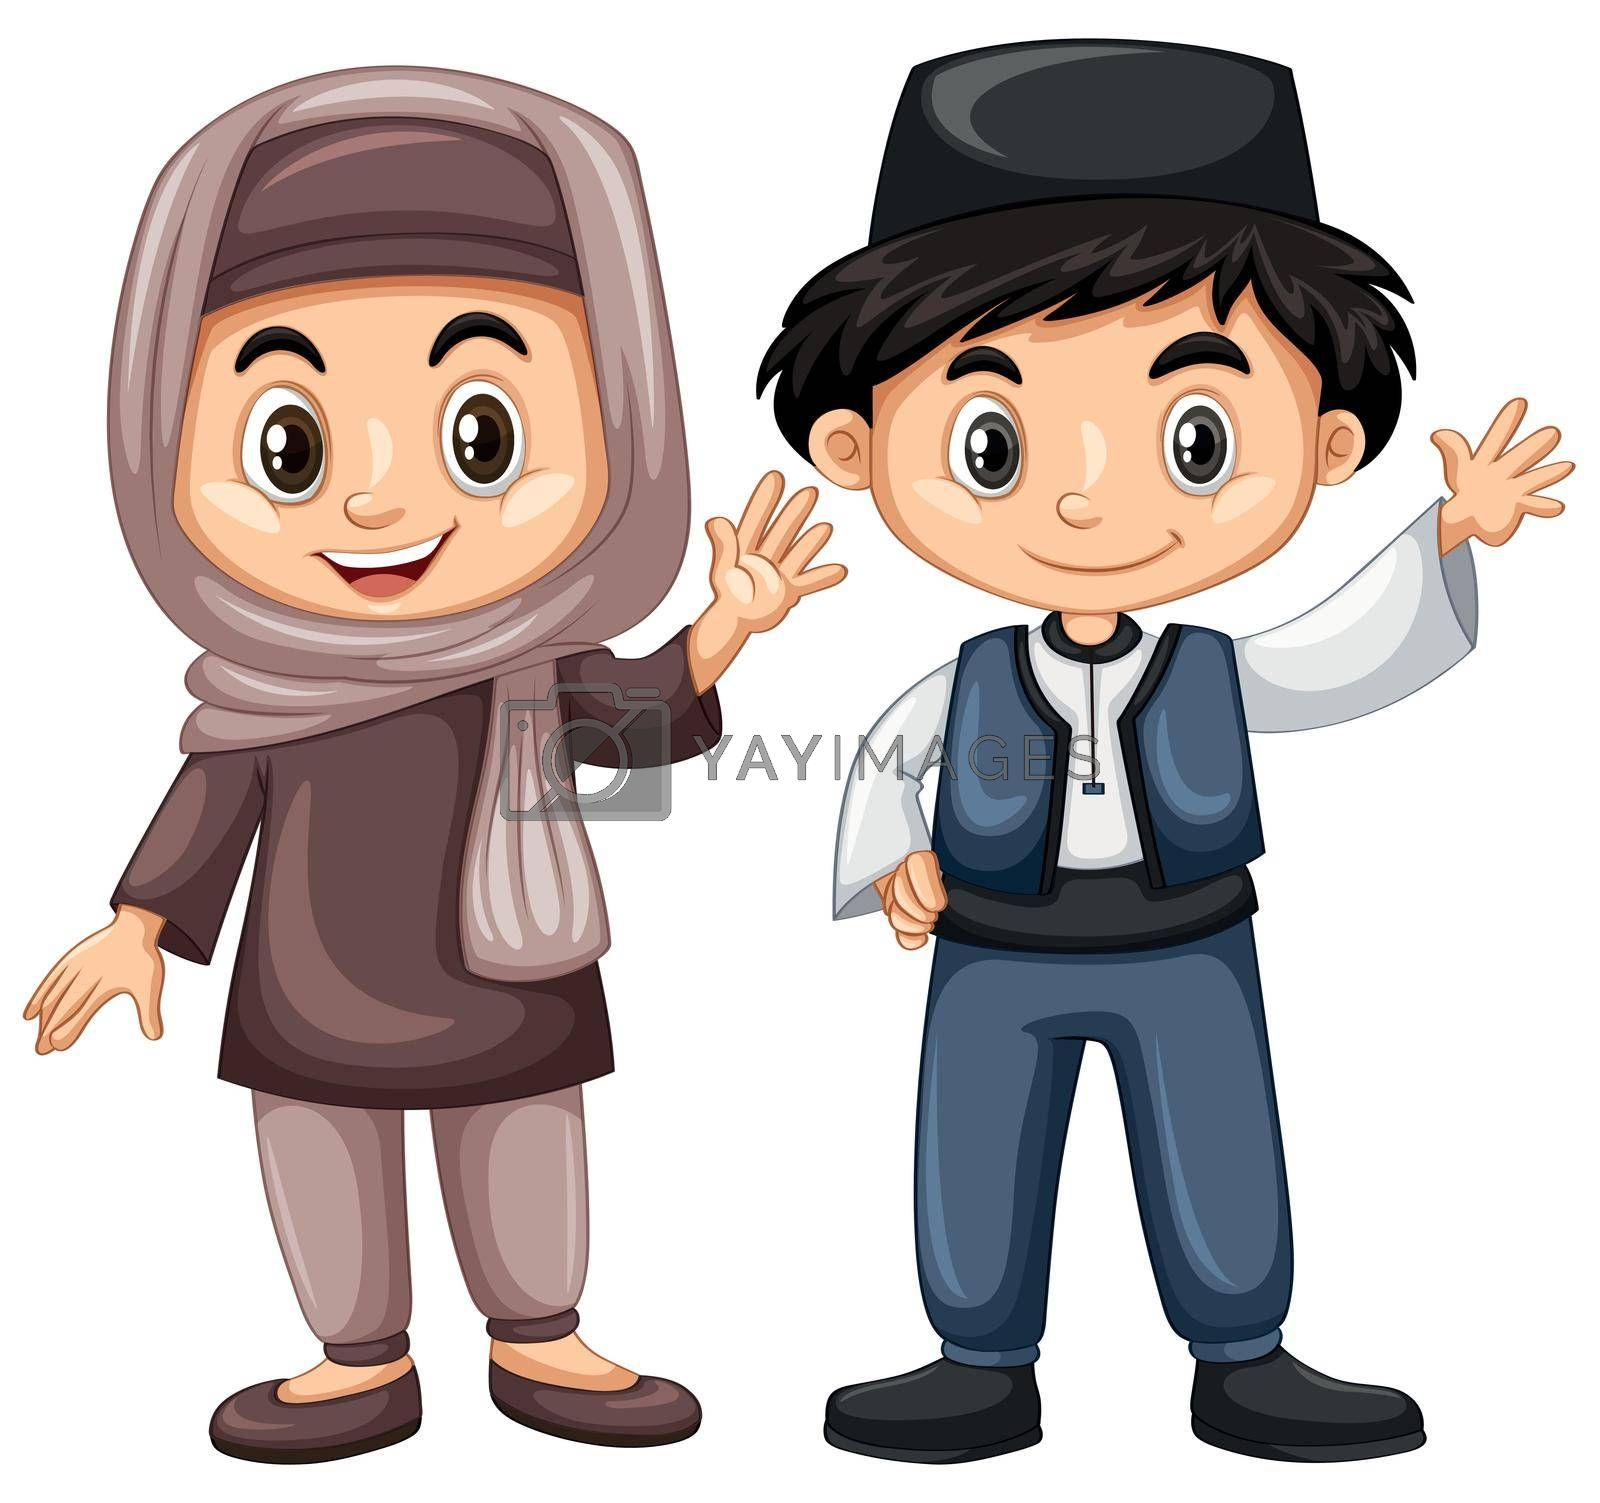 Turkish boy and girl in traditional costume illustration